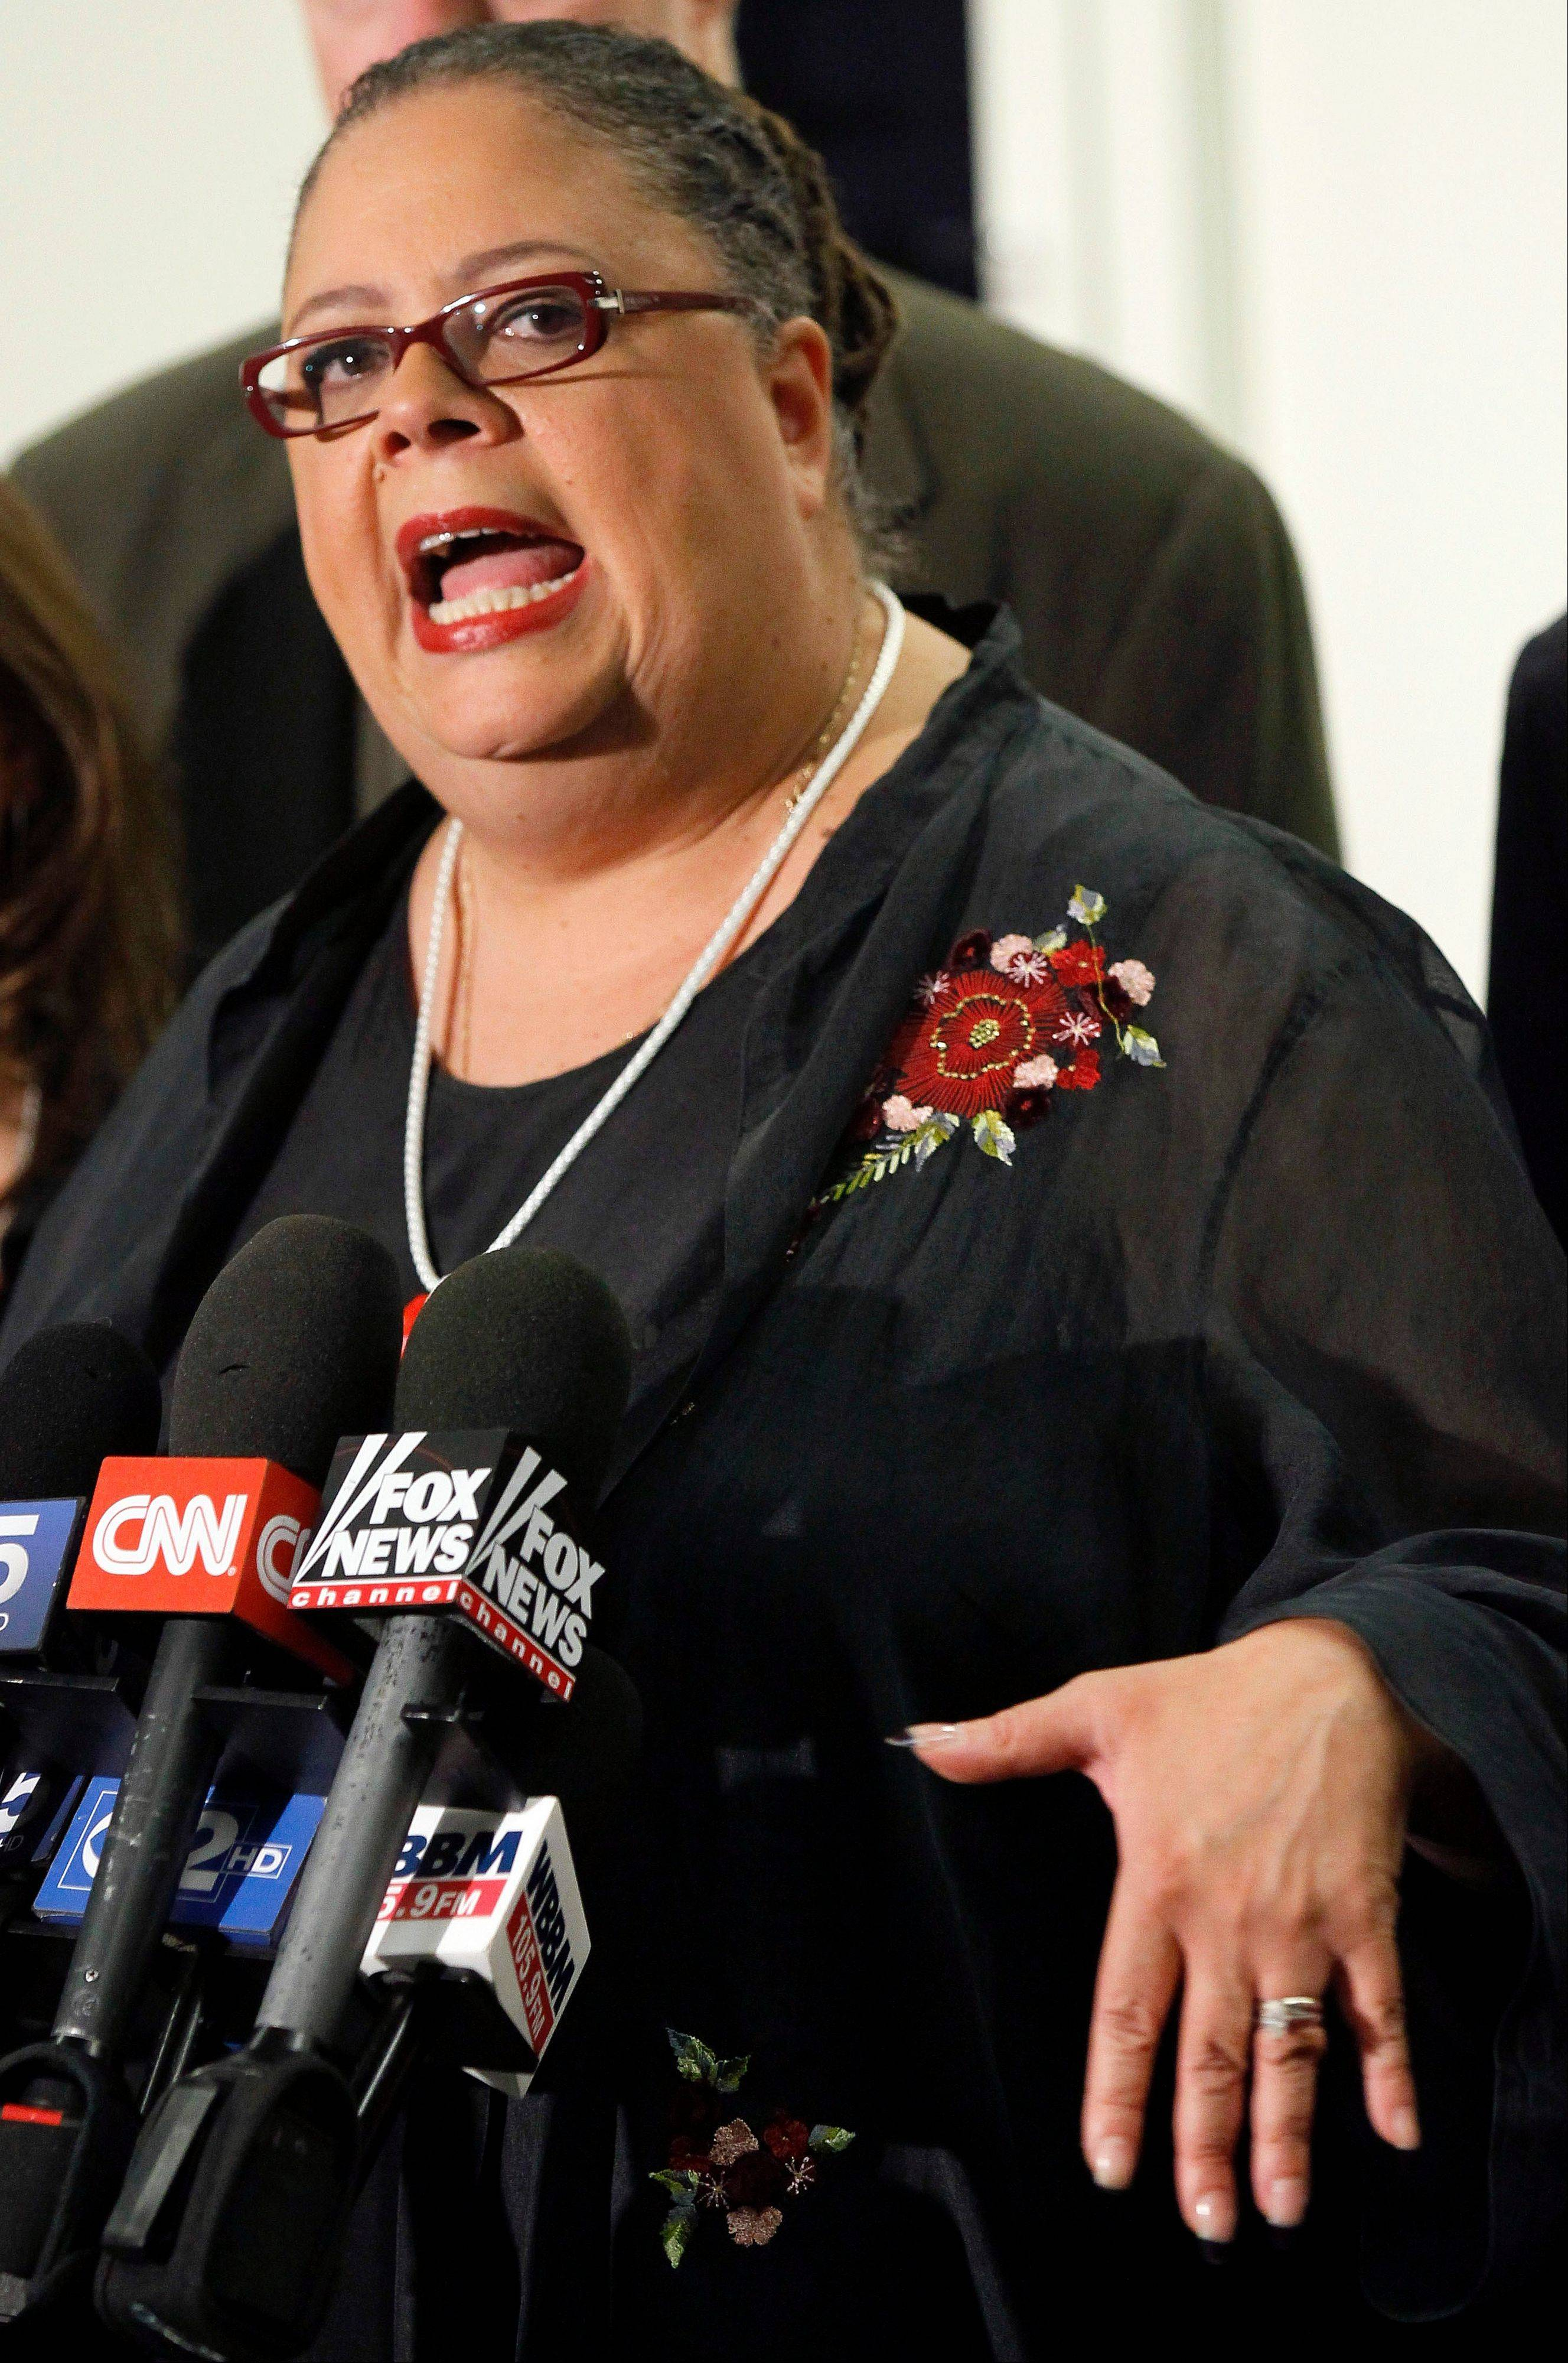 Union President Karen Lewis led Chicago's teachers on a seven-day strike that kept more than 350,000 students out of school last year.